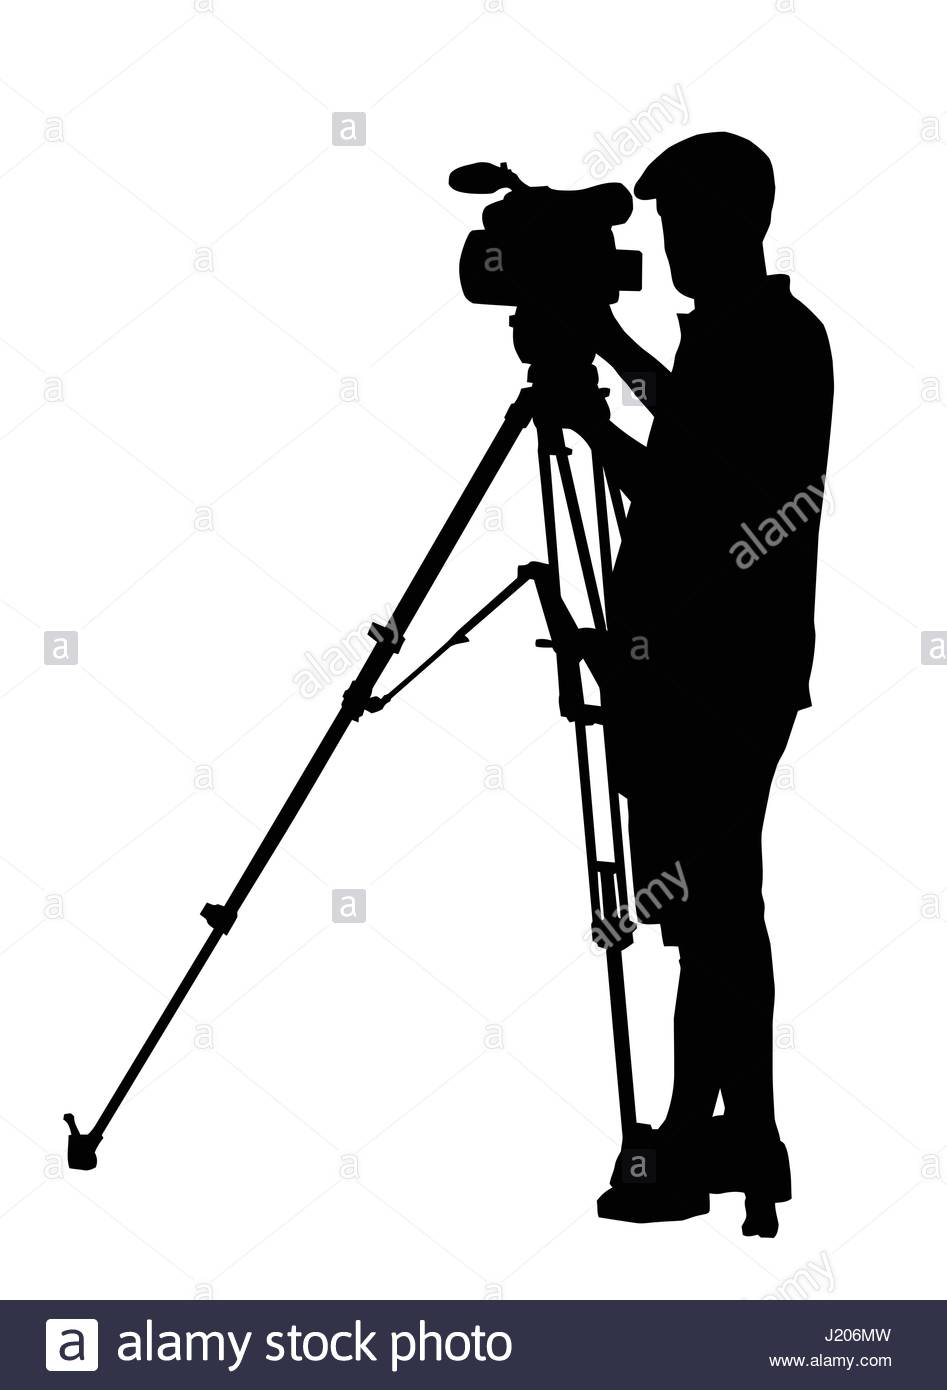 947x1390 Silhouette Of Movie Cameraman With Camera On Tripod Stand Stock